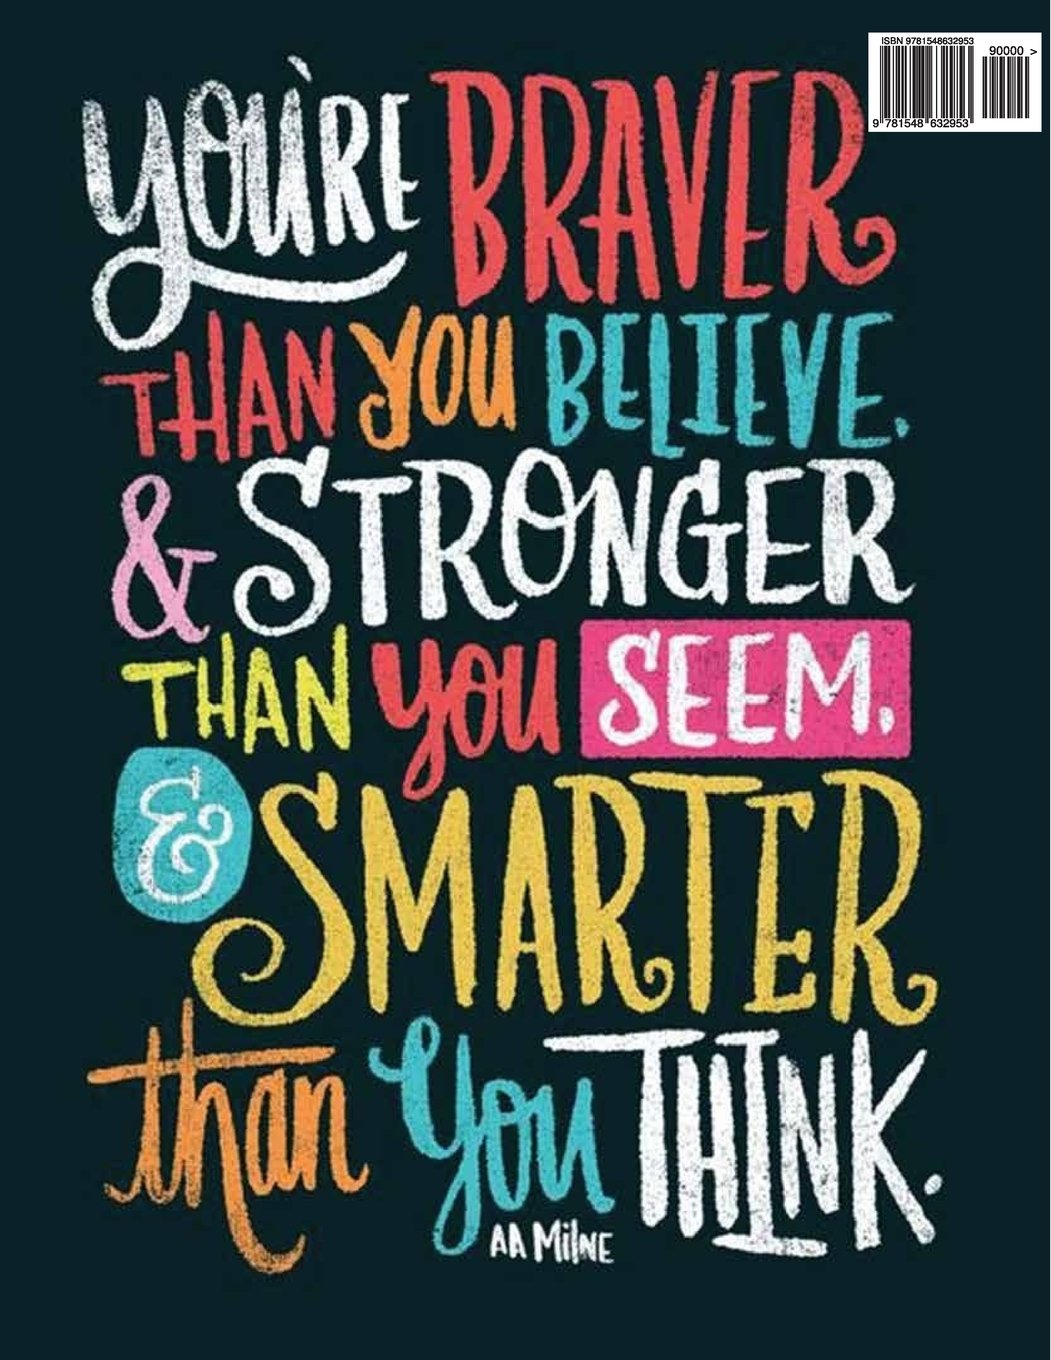 Are believe you you smarter than You're braver